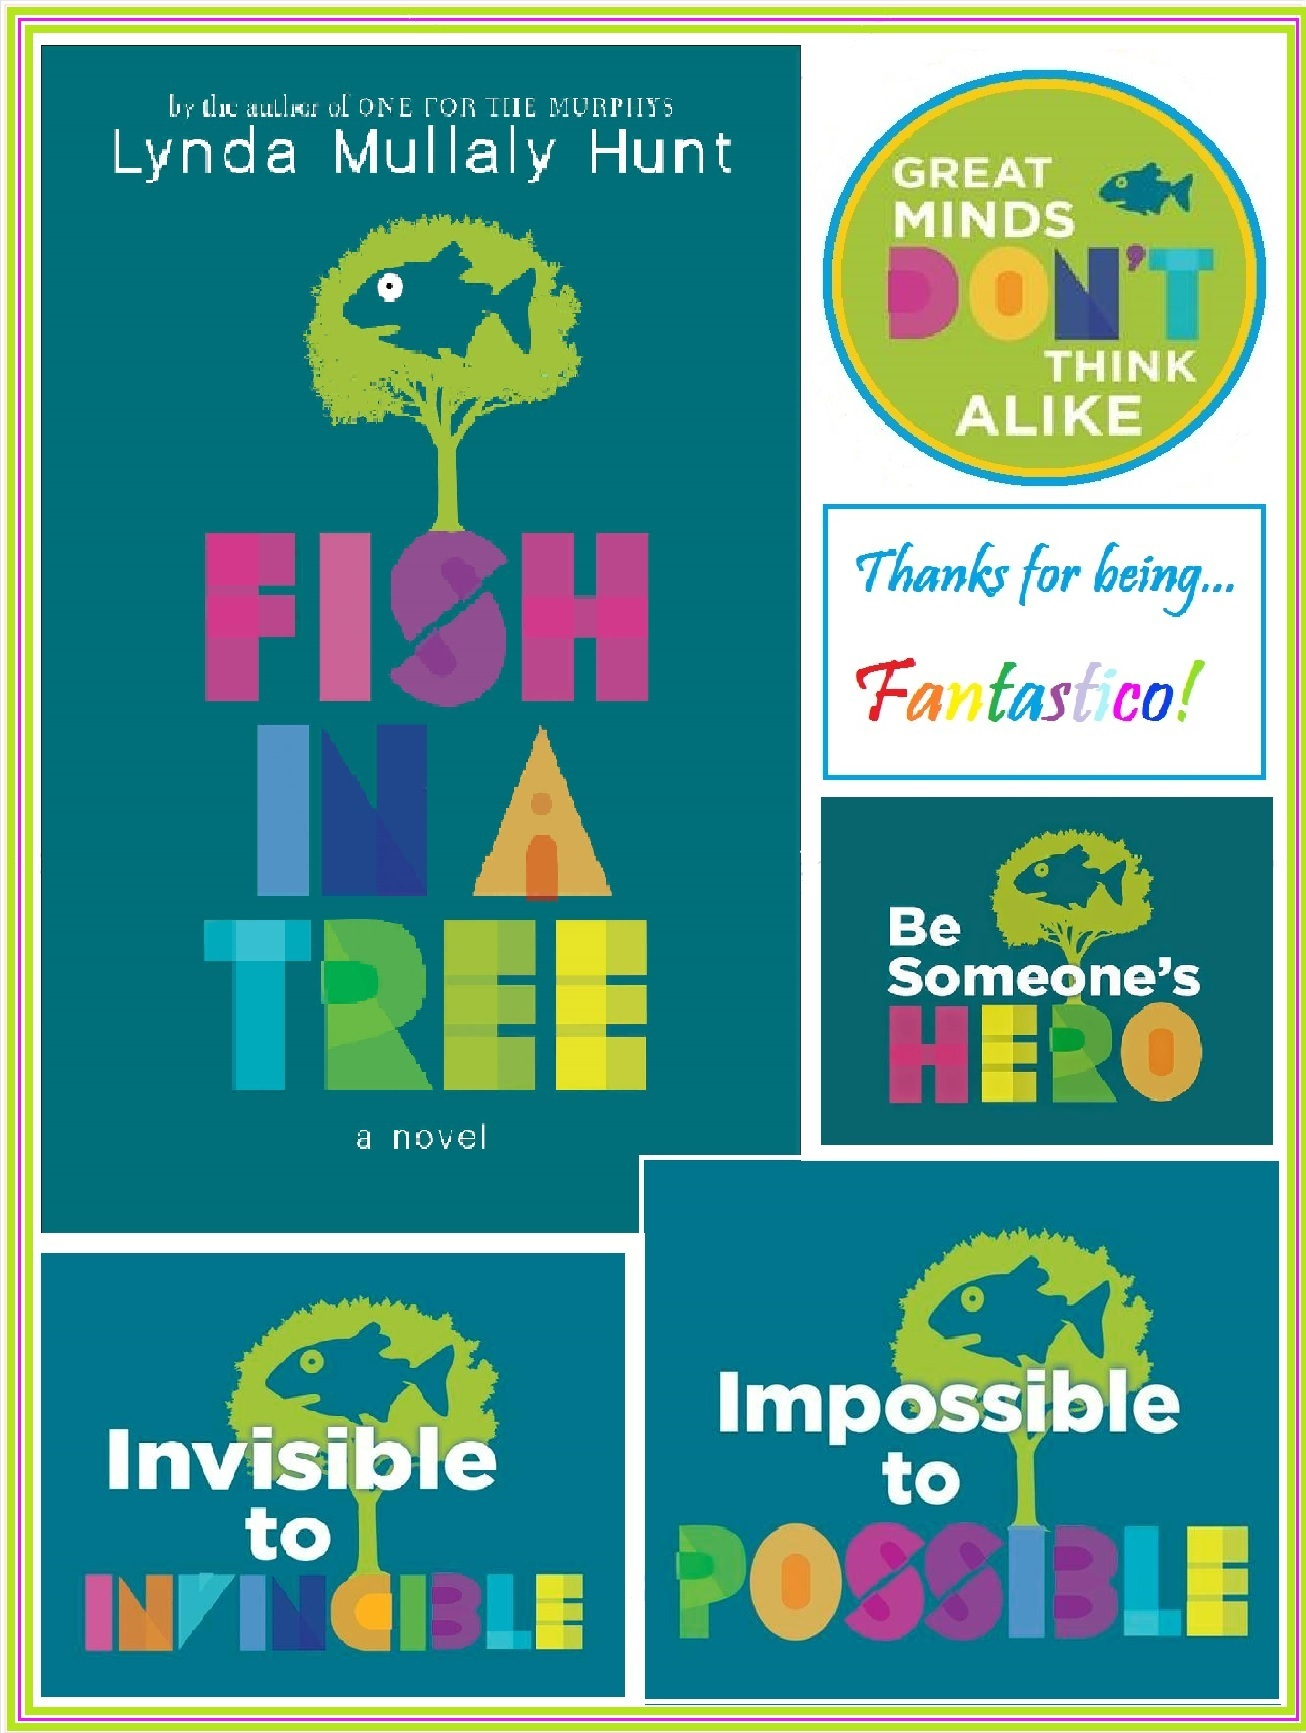 Great minds don t think alike fiat contest celebration for Fish in a tree